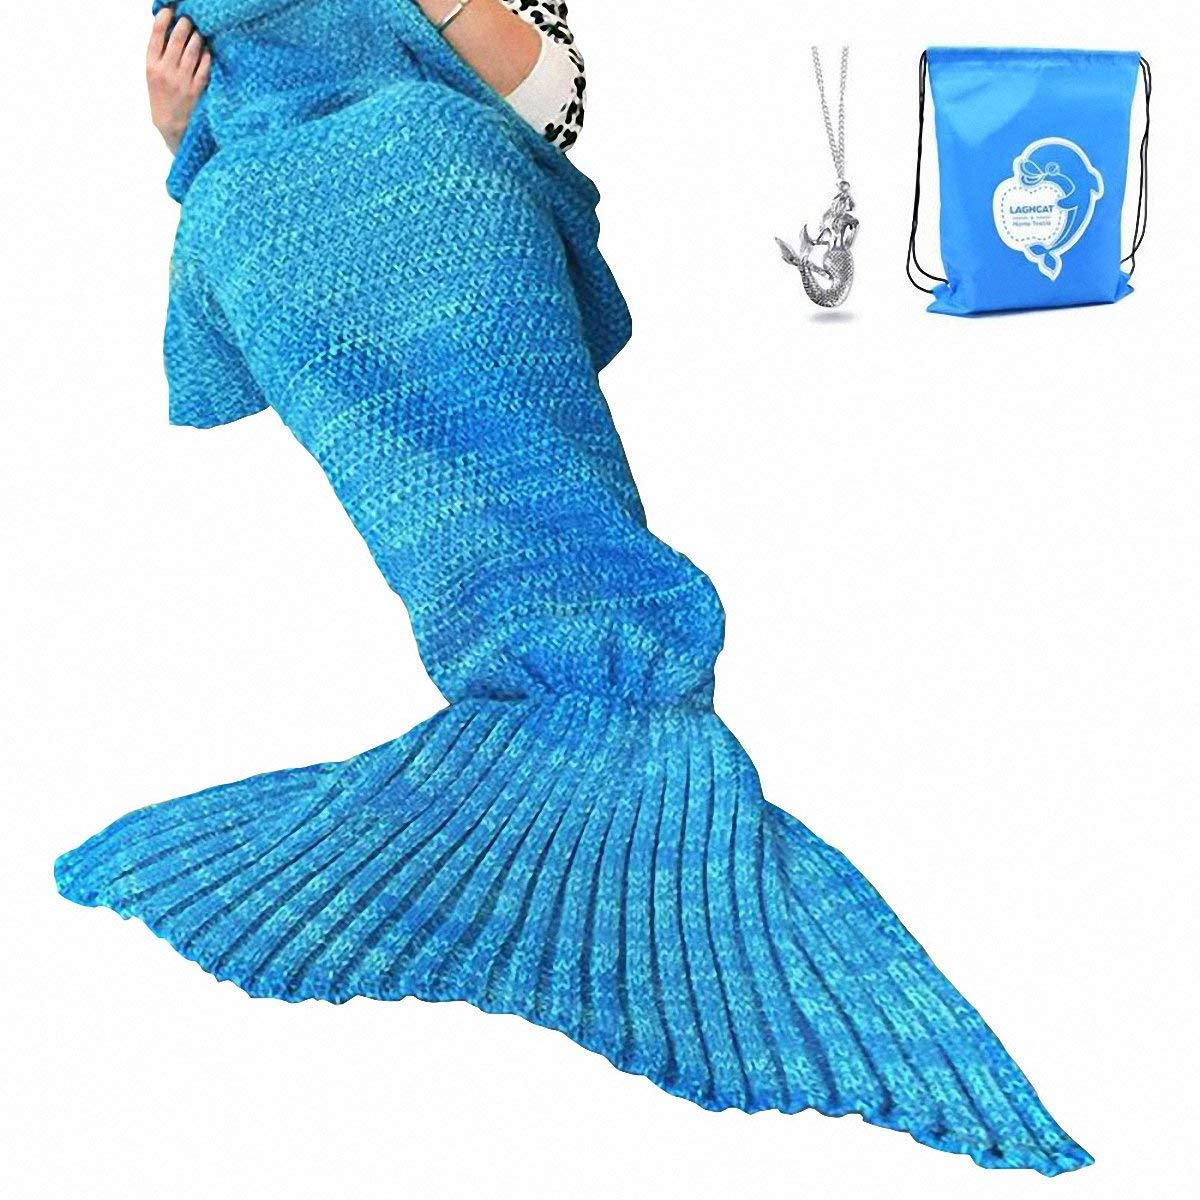 a175d71324bda Amazon.com: LAGHCAT Mermaid Tail Blanket Crochet Mermaid Blanket for Adult,  Soft All Seasons Sleeping Blankets, Classic Pattern (71